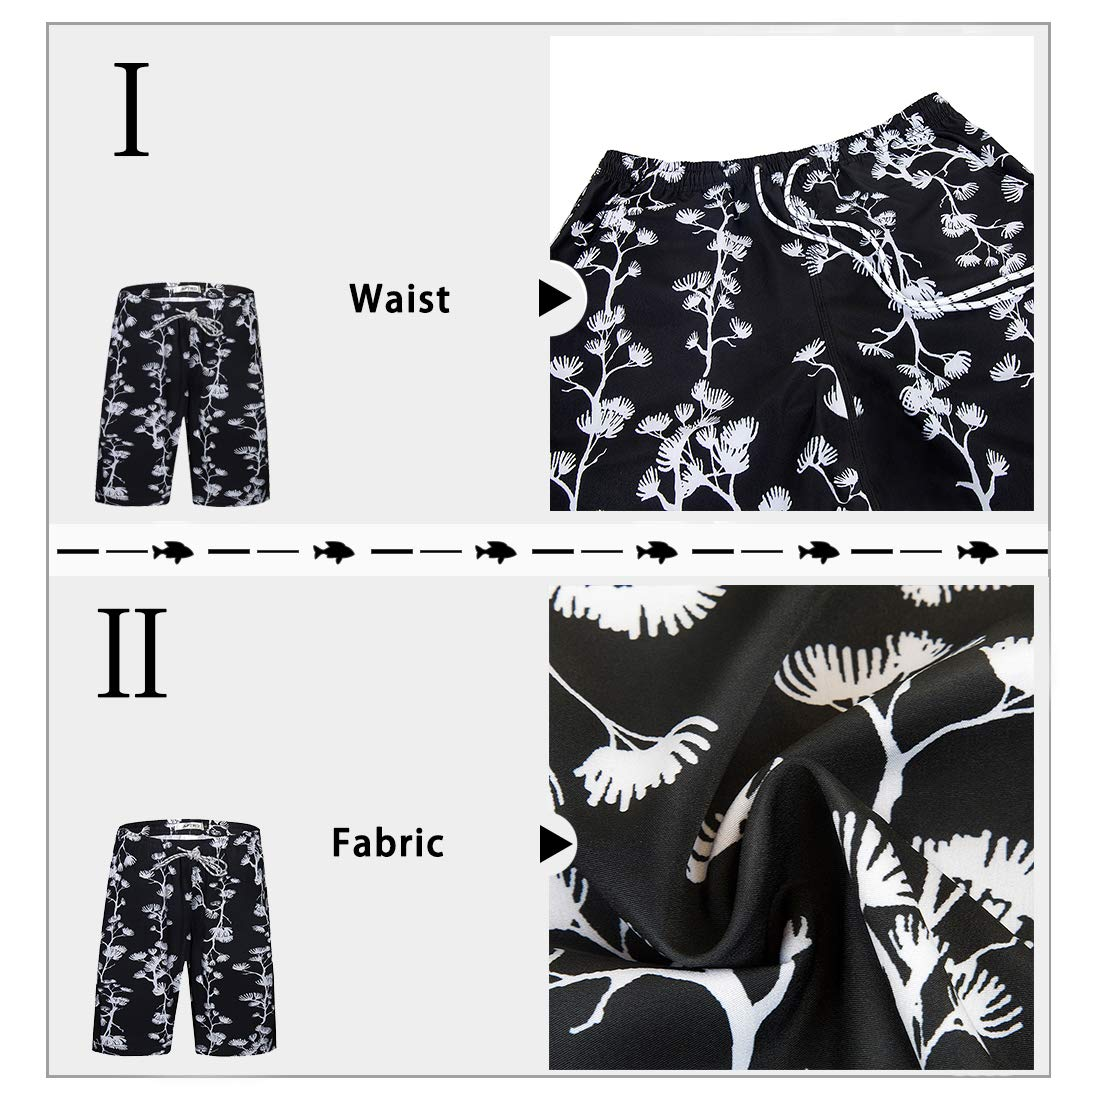 APTRO Mens Quick Dry Swim Trunks with Pockets Long Elastic Waistband Beach Board Shorts Bathing Suits